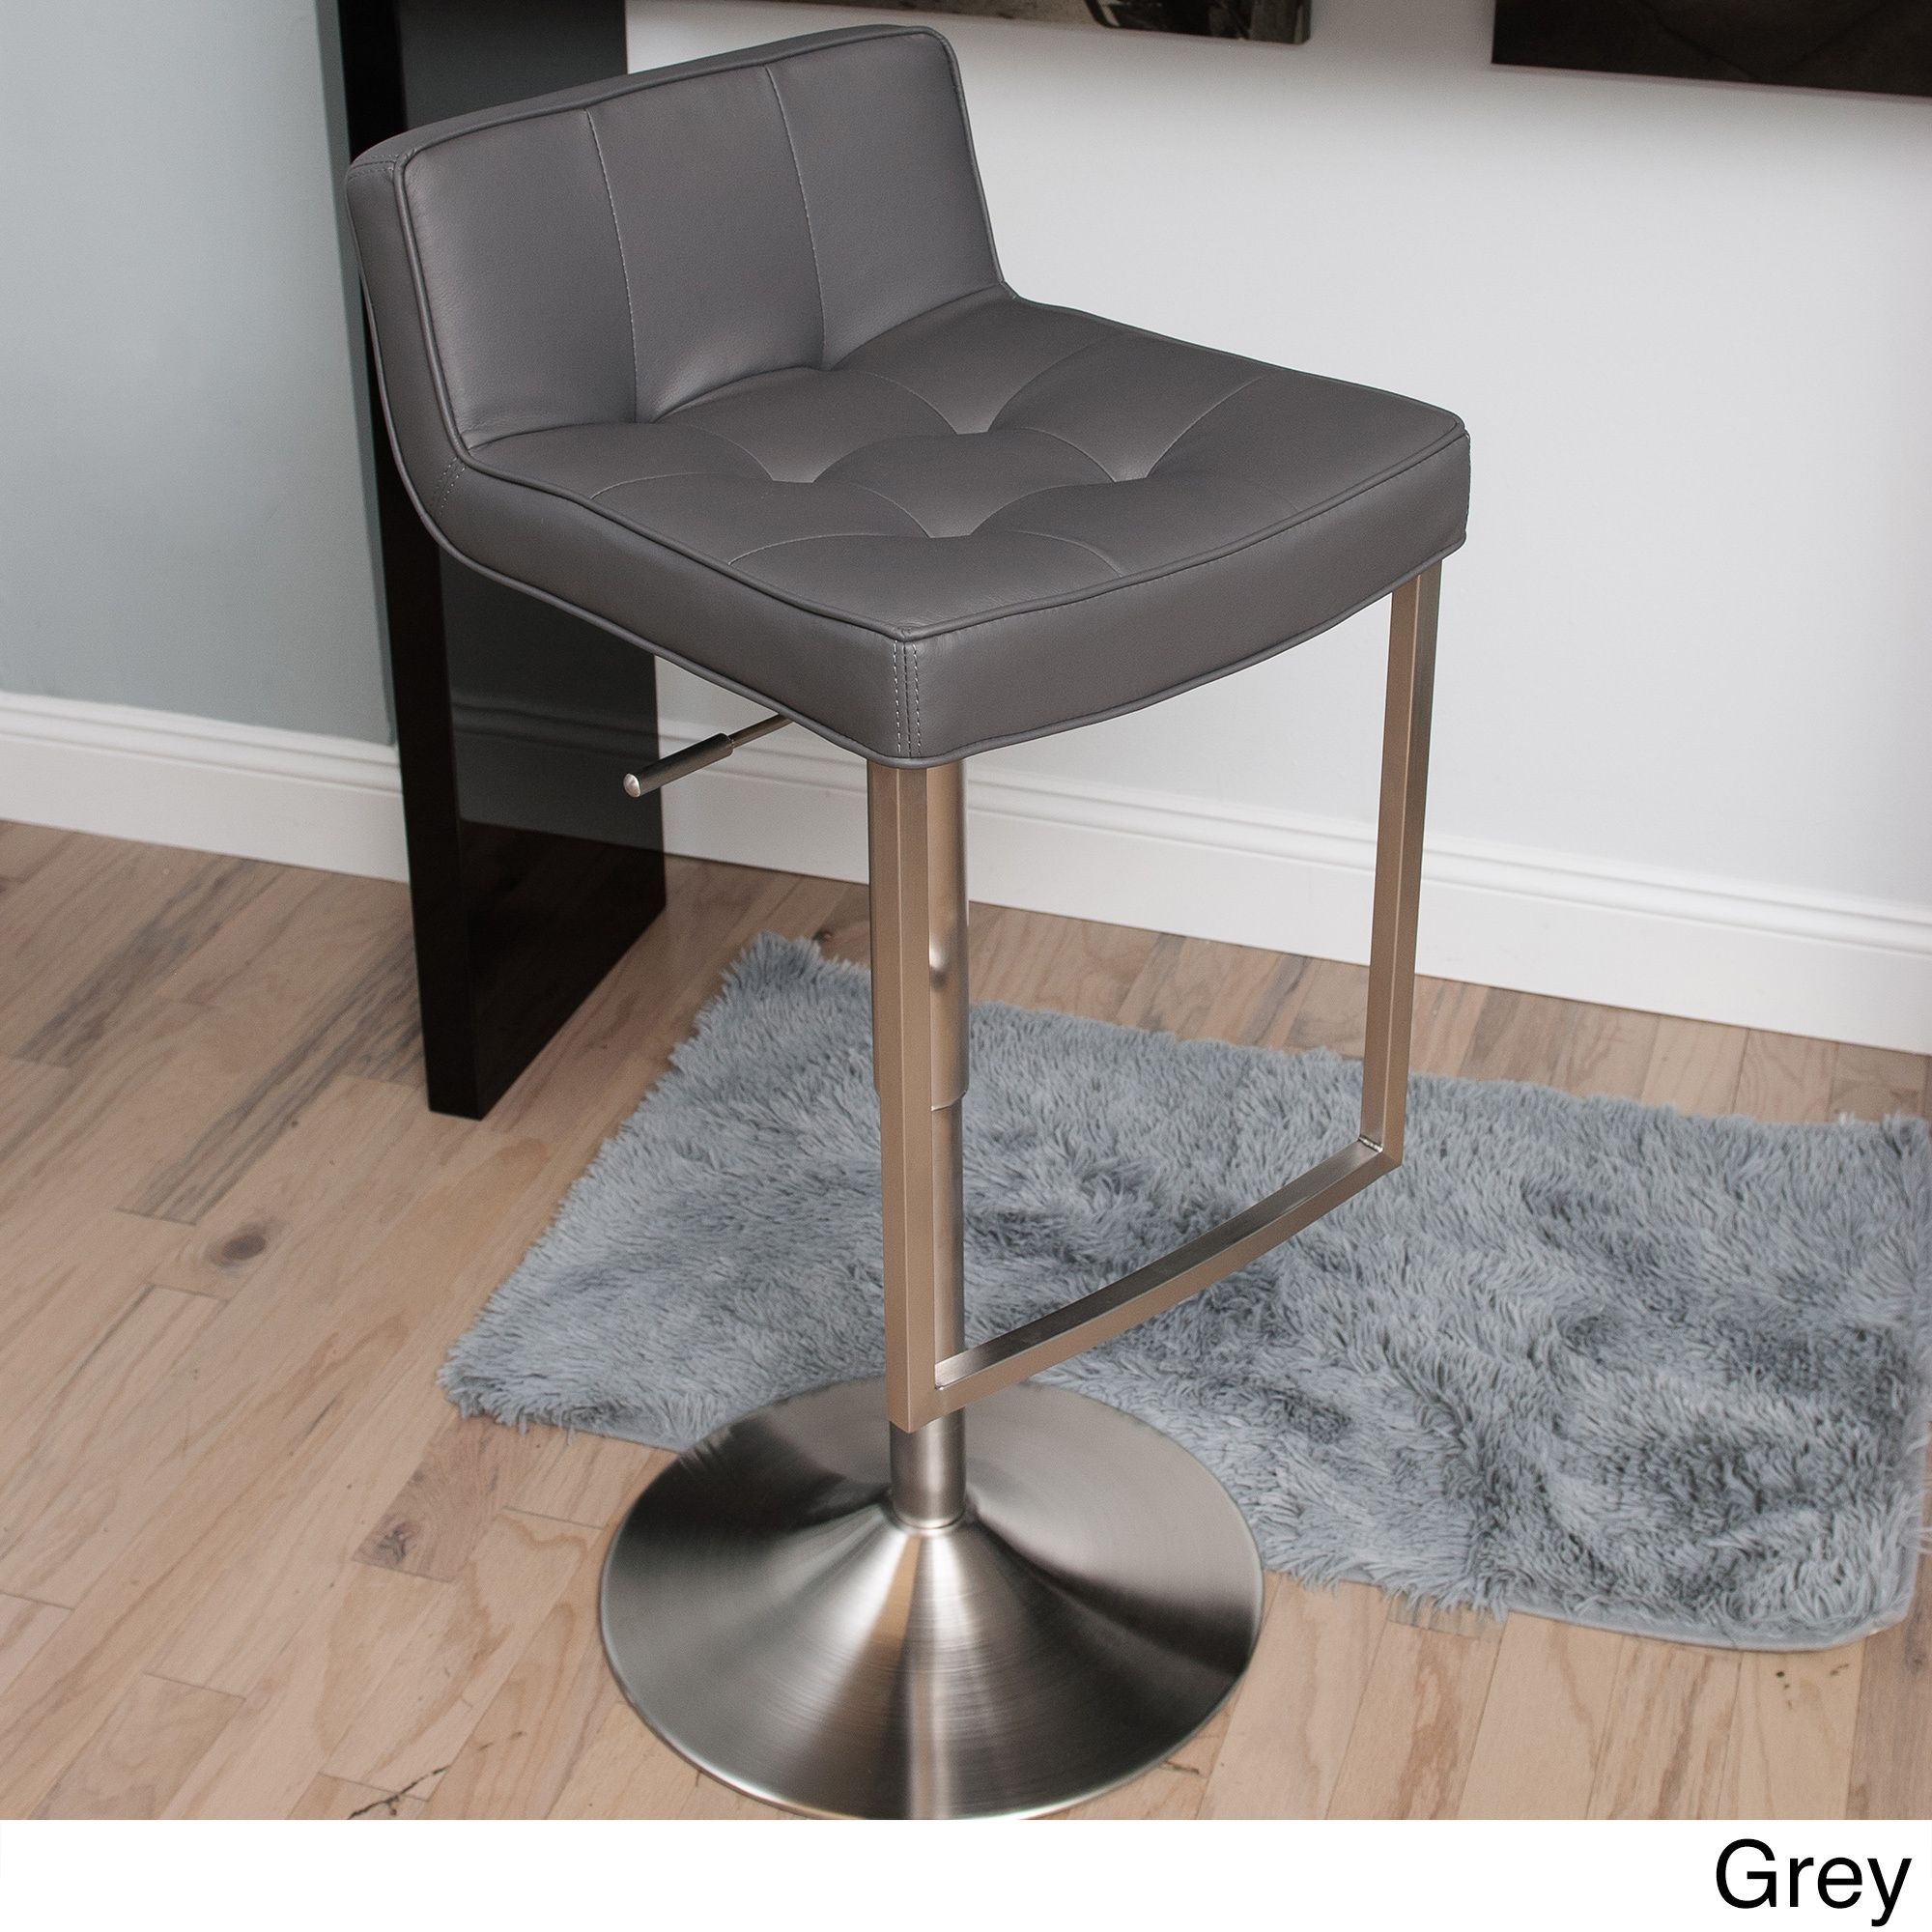 gray bar stool - This slick stylish barstool features a modern construction with a fabulous · Counter Height ... & gray bar stool - This slick stylish barstool features a modern ... islam-shia.org